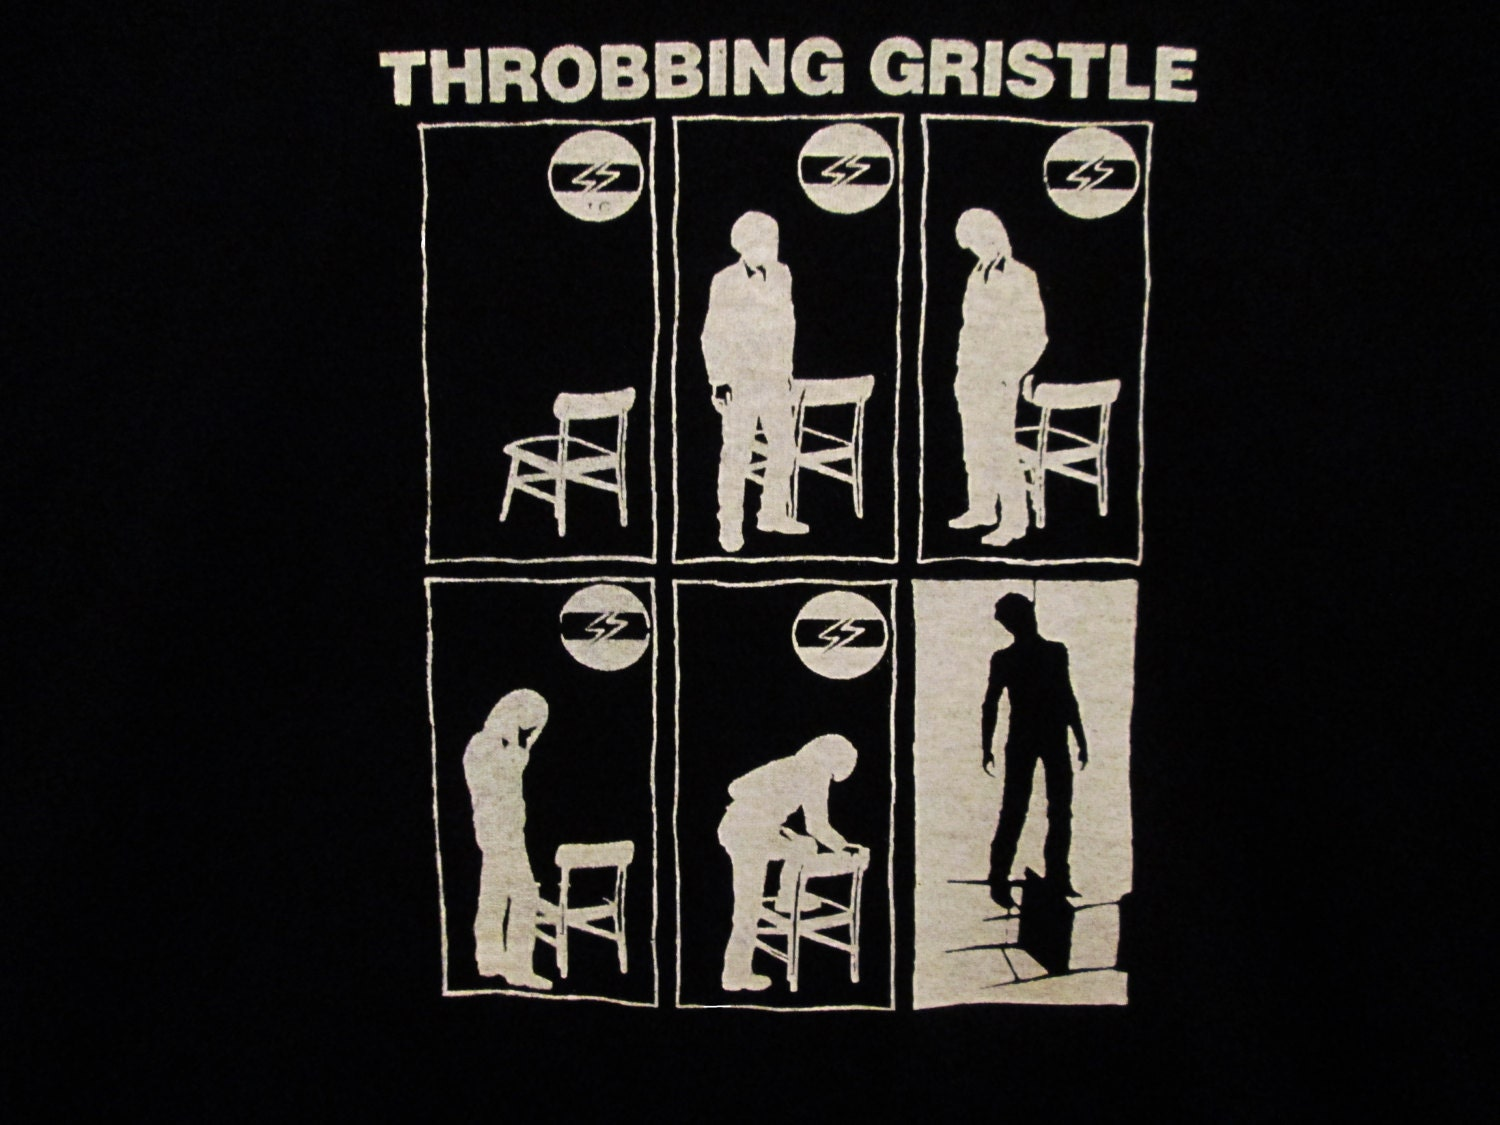 Throbbing Gristle - At Oundle Public School